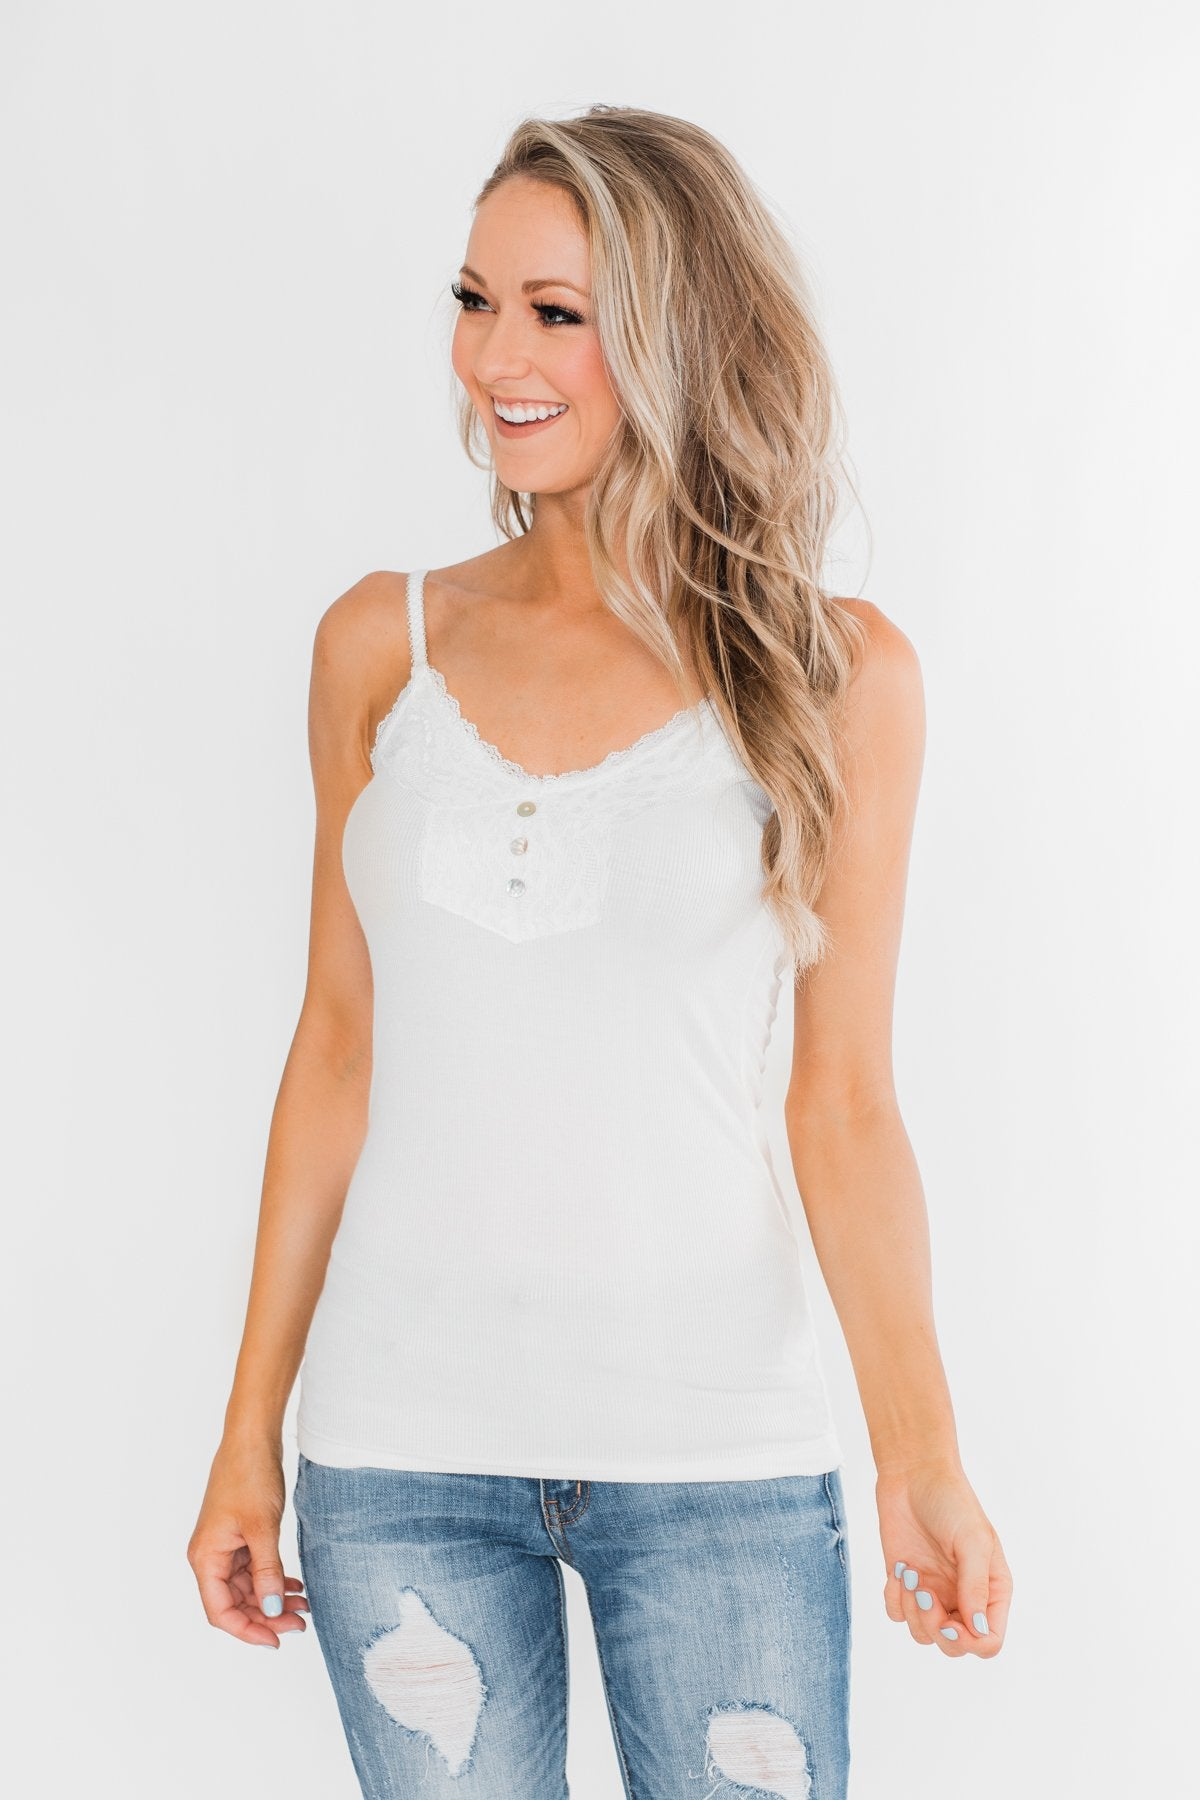 Pulse Basics Lace Trim Button Tank- White